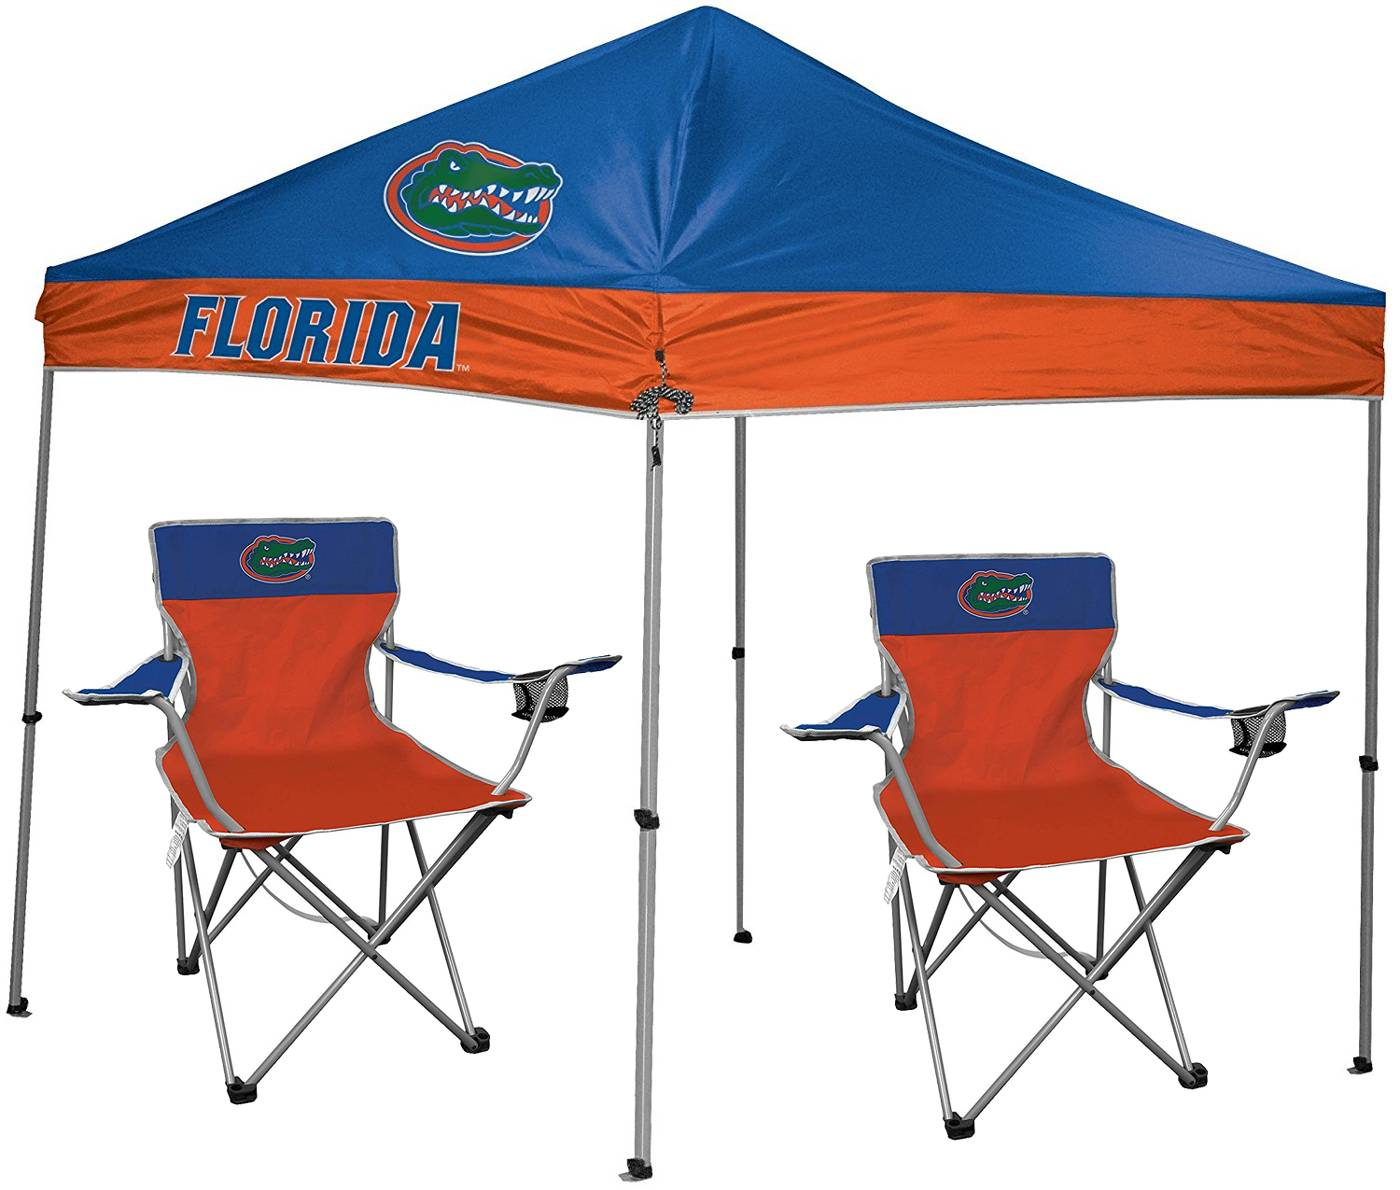 The Florida Gators Rawlings Canopy Tent u0026 Chair Set is the perfect starter set to host your first tailgate! Included in this package is a 9u0027 x 9u0027 canopy ...  sc 1 st  Sports Unlimited & Florida Gators Rawlings Canopy Tent u0026 Chair Set